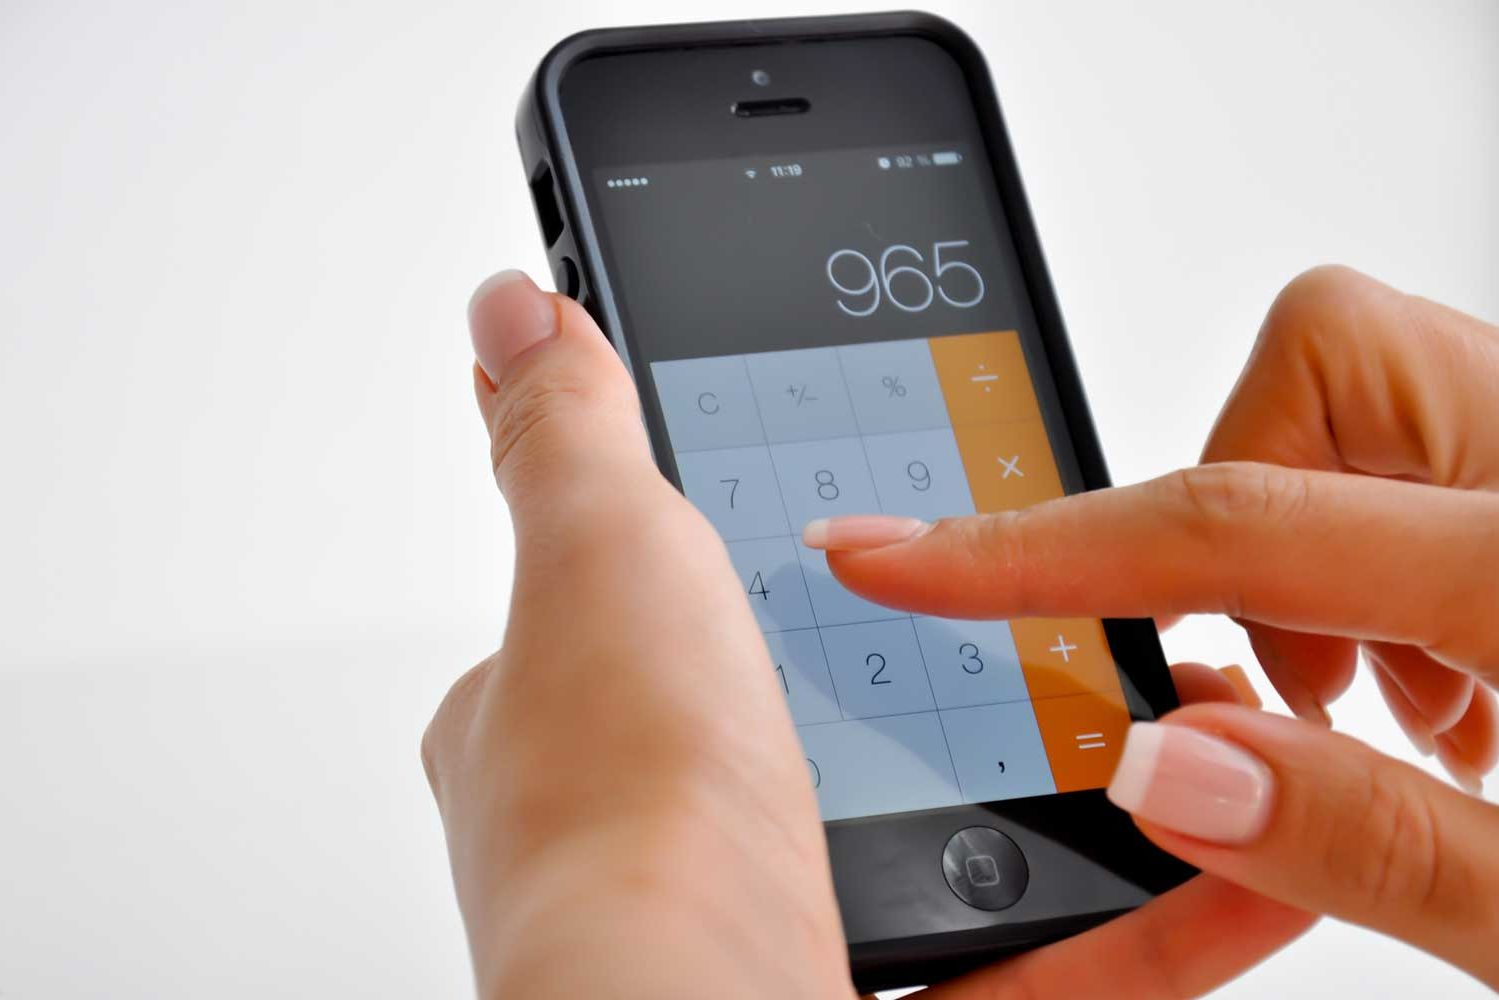 Your iPhone Calculator Has a Secret Function You Probably Didn't Know About